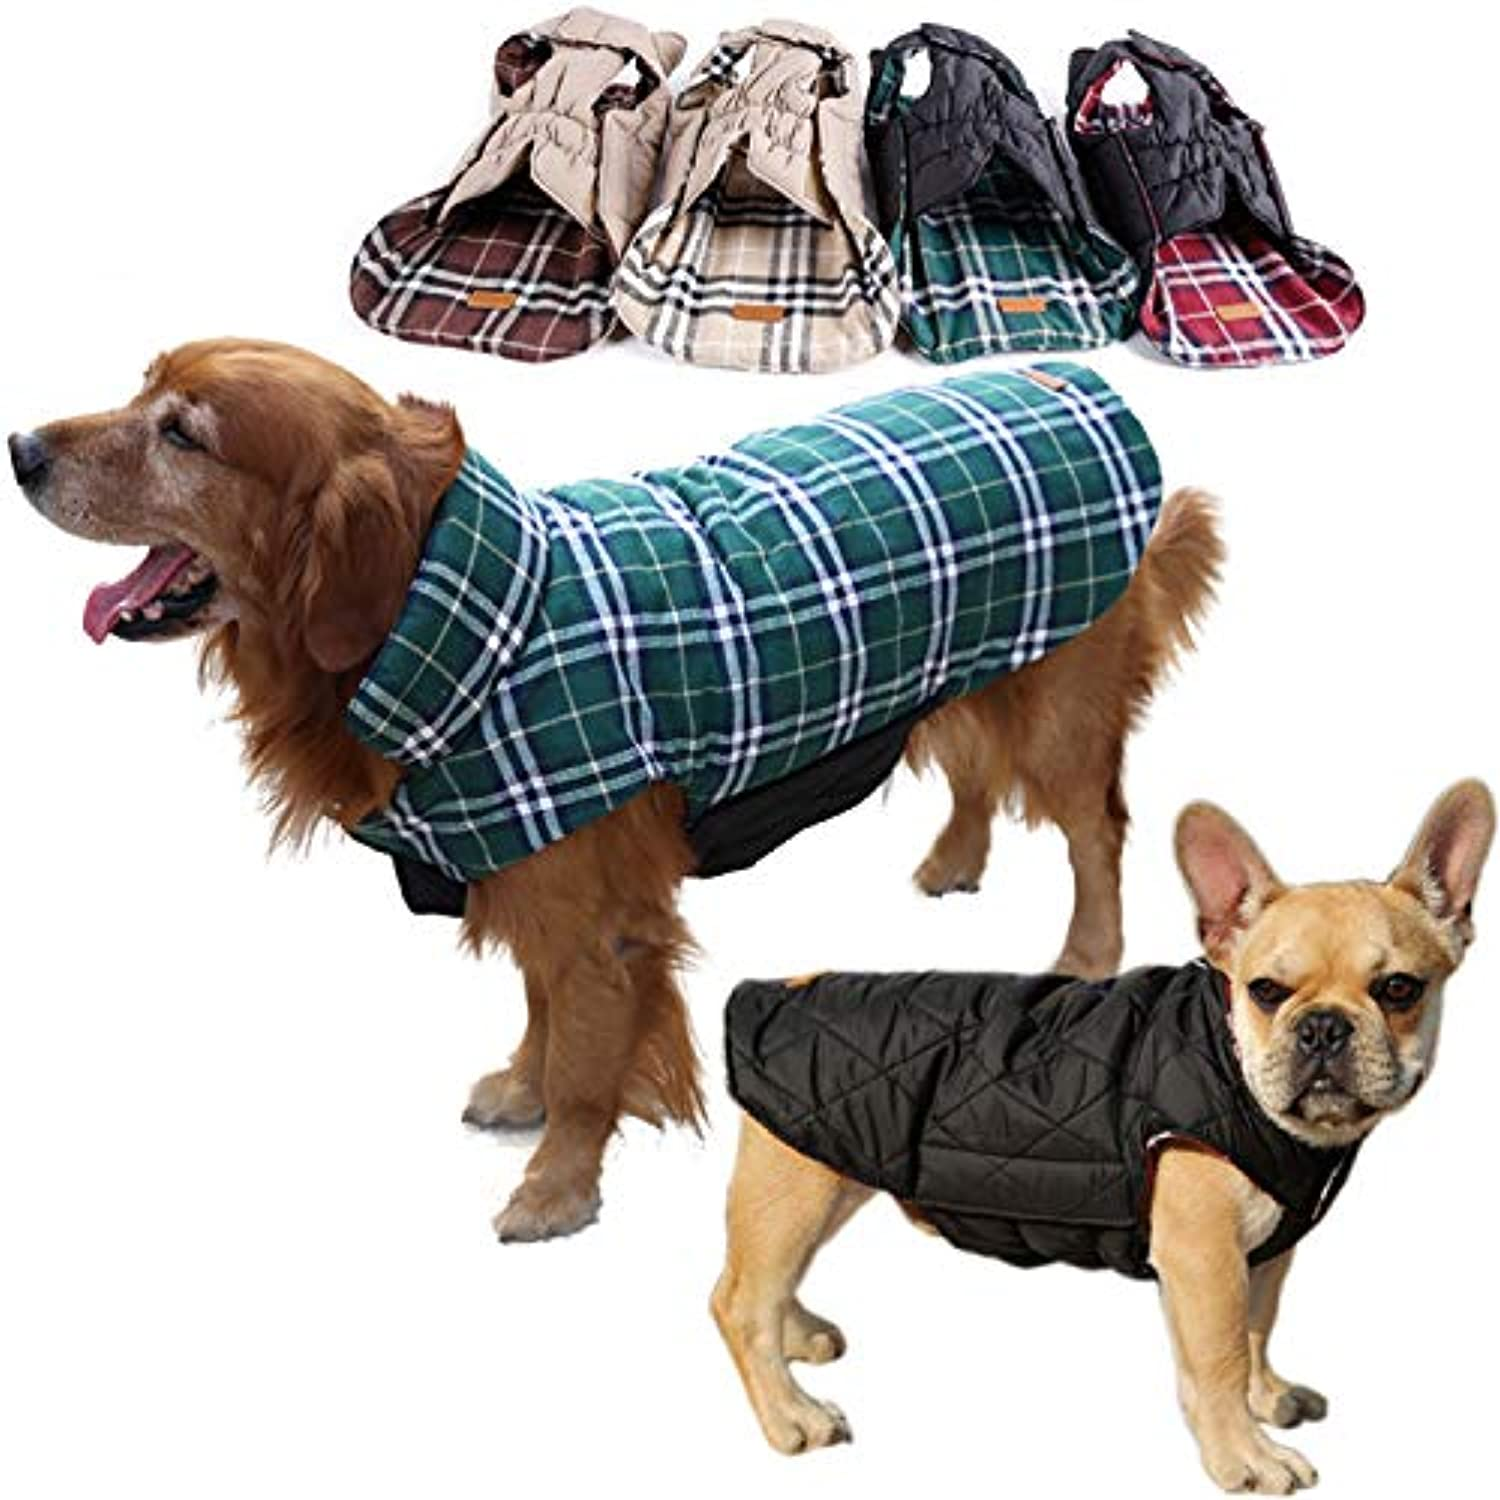 REXSONN Pet Dog Cats Cozy Windprova Jacket Winter Warm Apparel Grid Plaid Riversible Coats for Small Puppy Medium Large Dogs